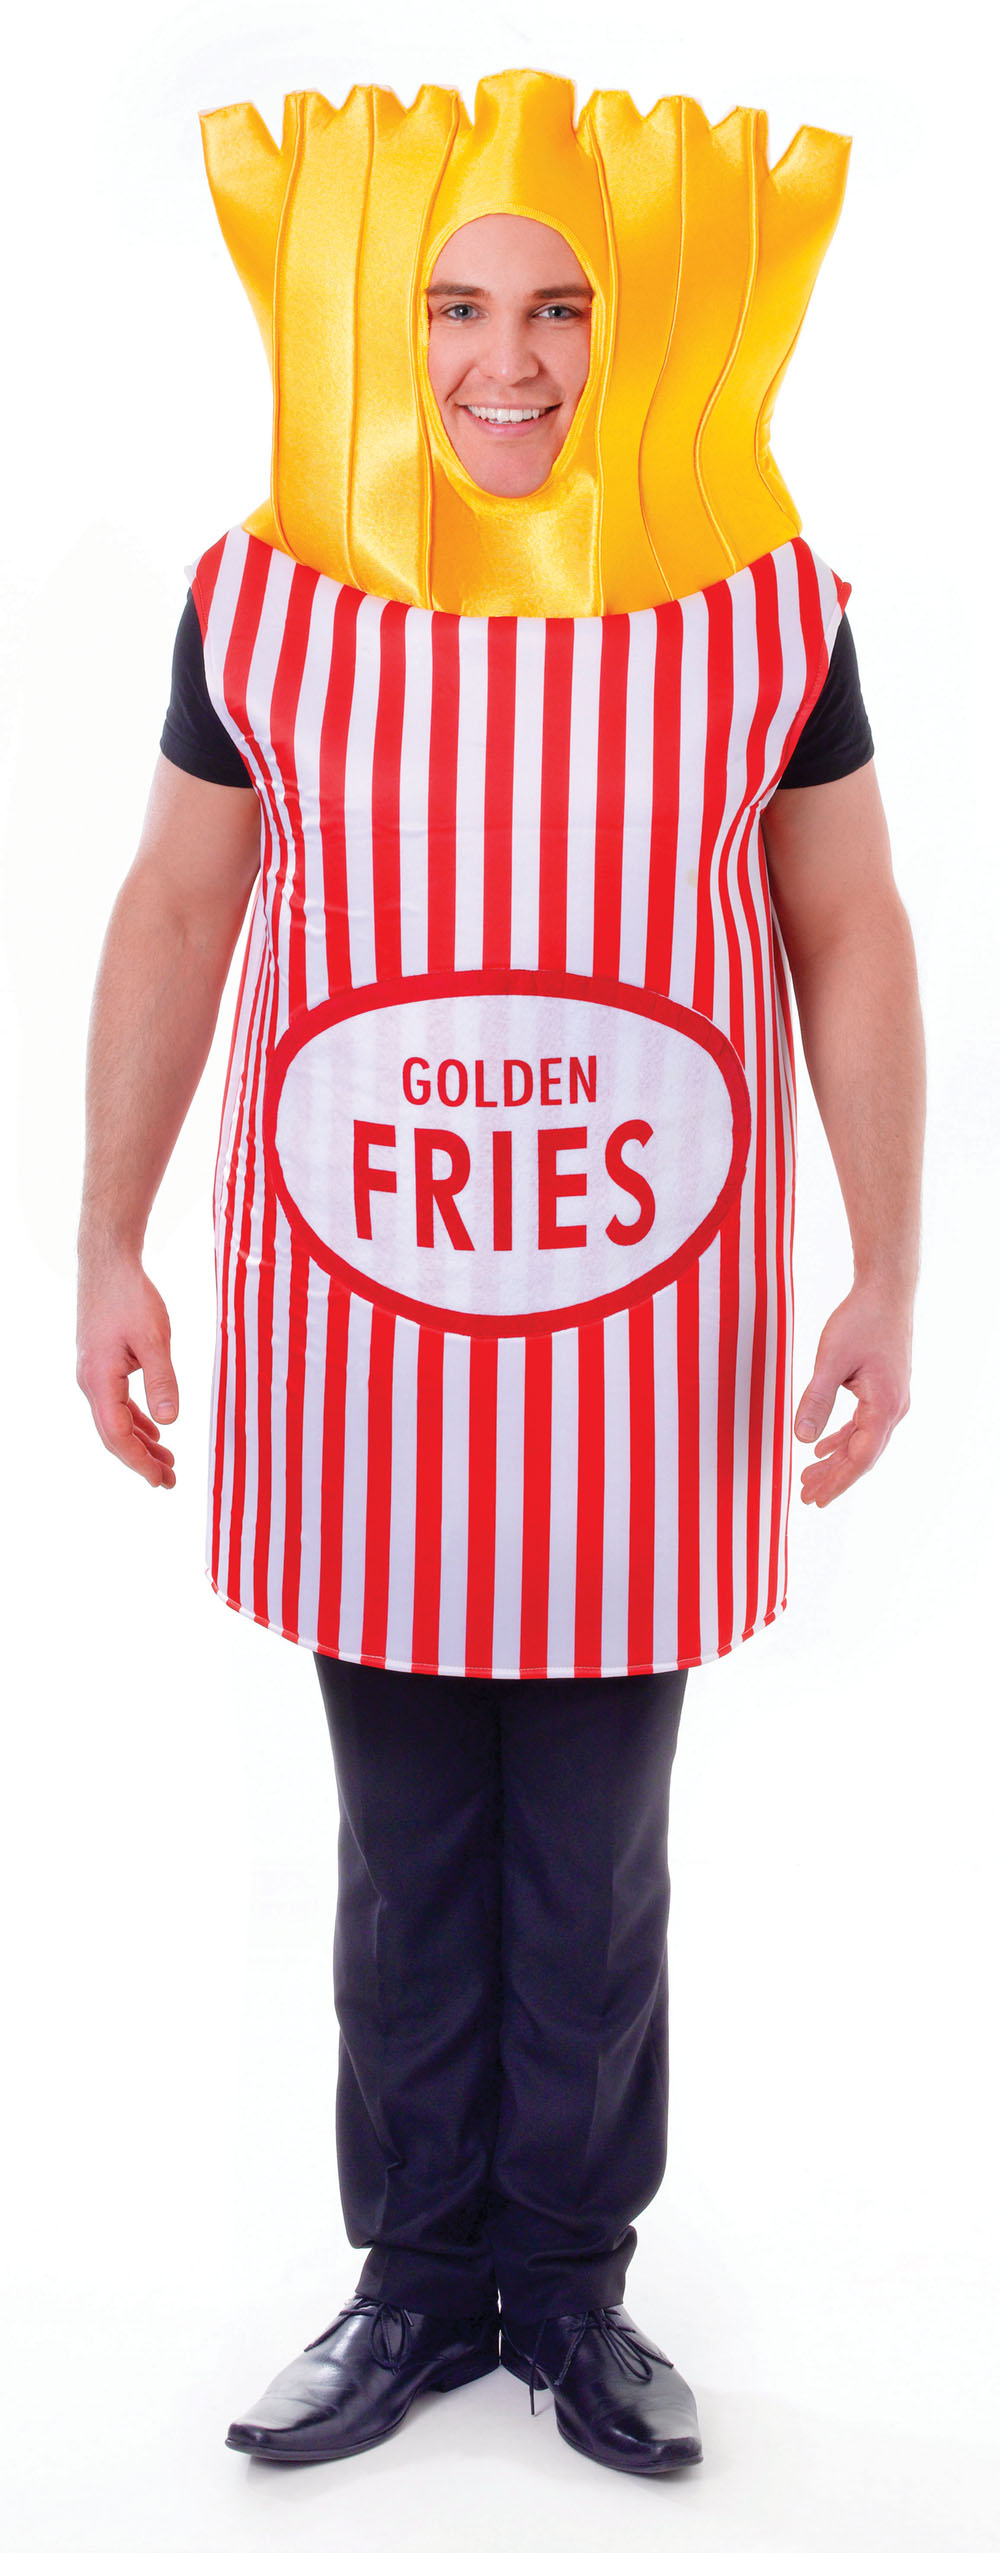 Unisex French Fries Takeaway Chips Fancy Dress Costume Fast Food Party Outfit